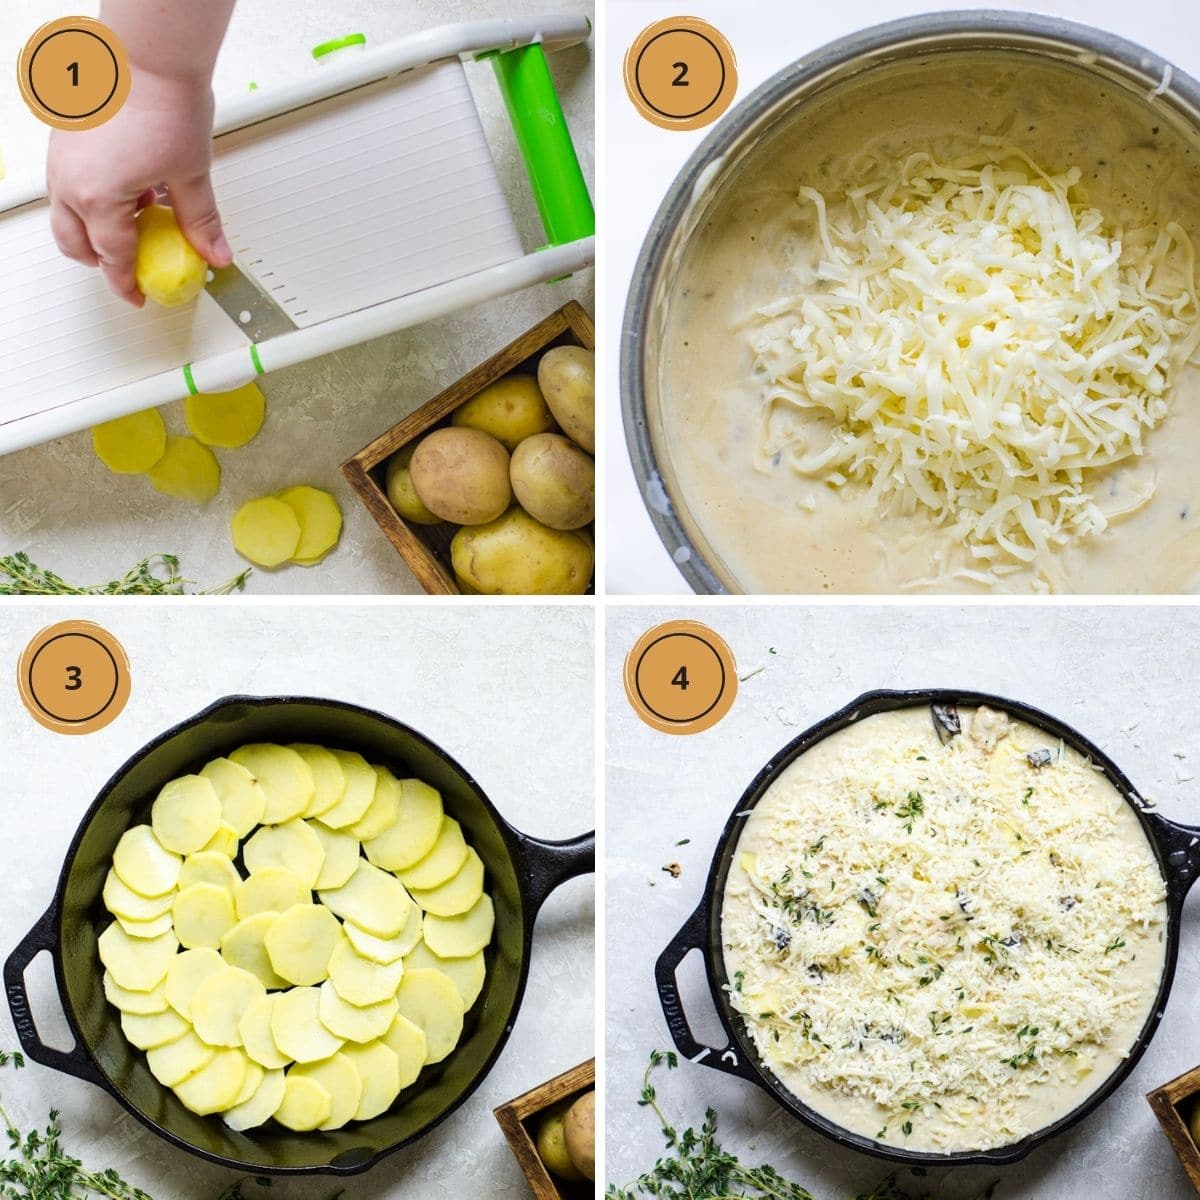 Four steps for making Scalloped Potatoes with Mushroom Soup